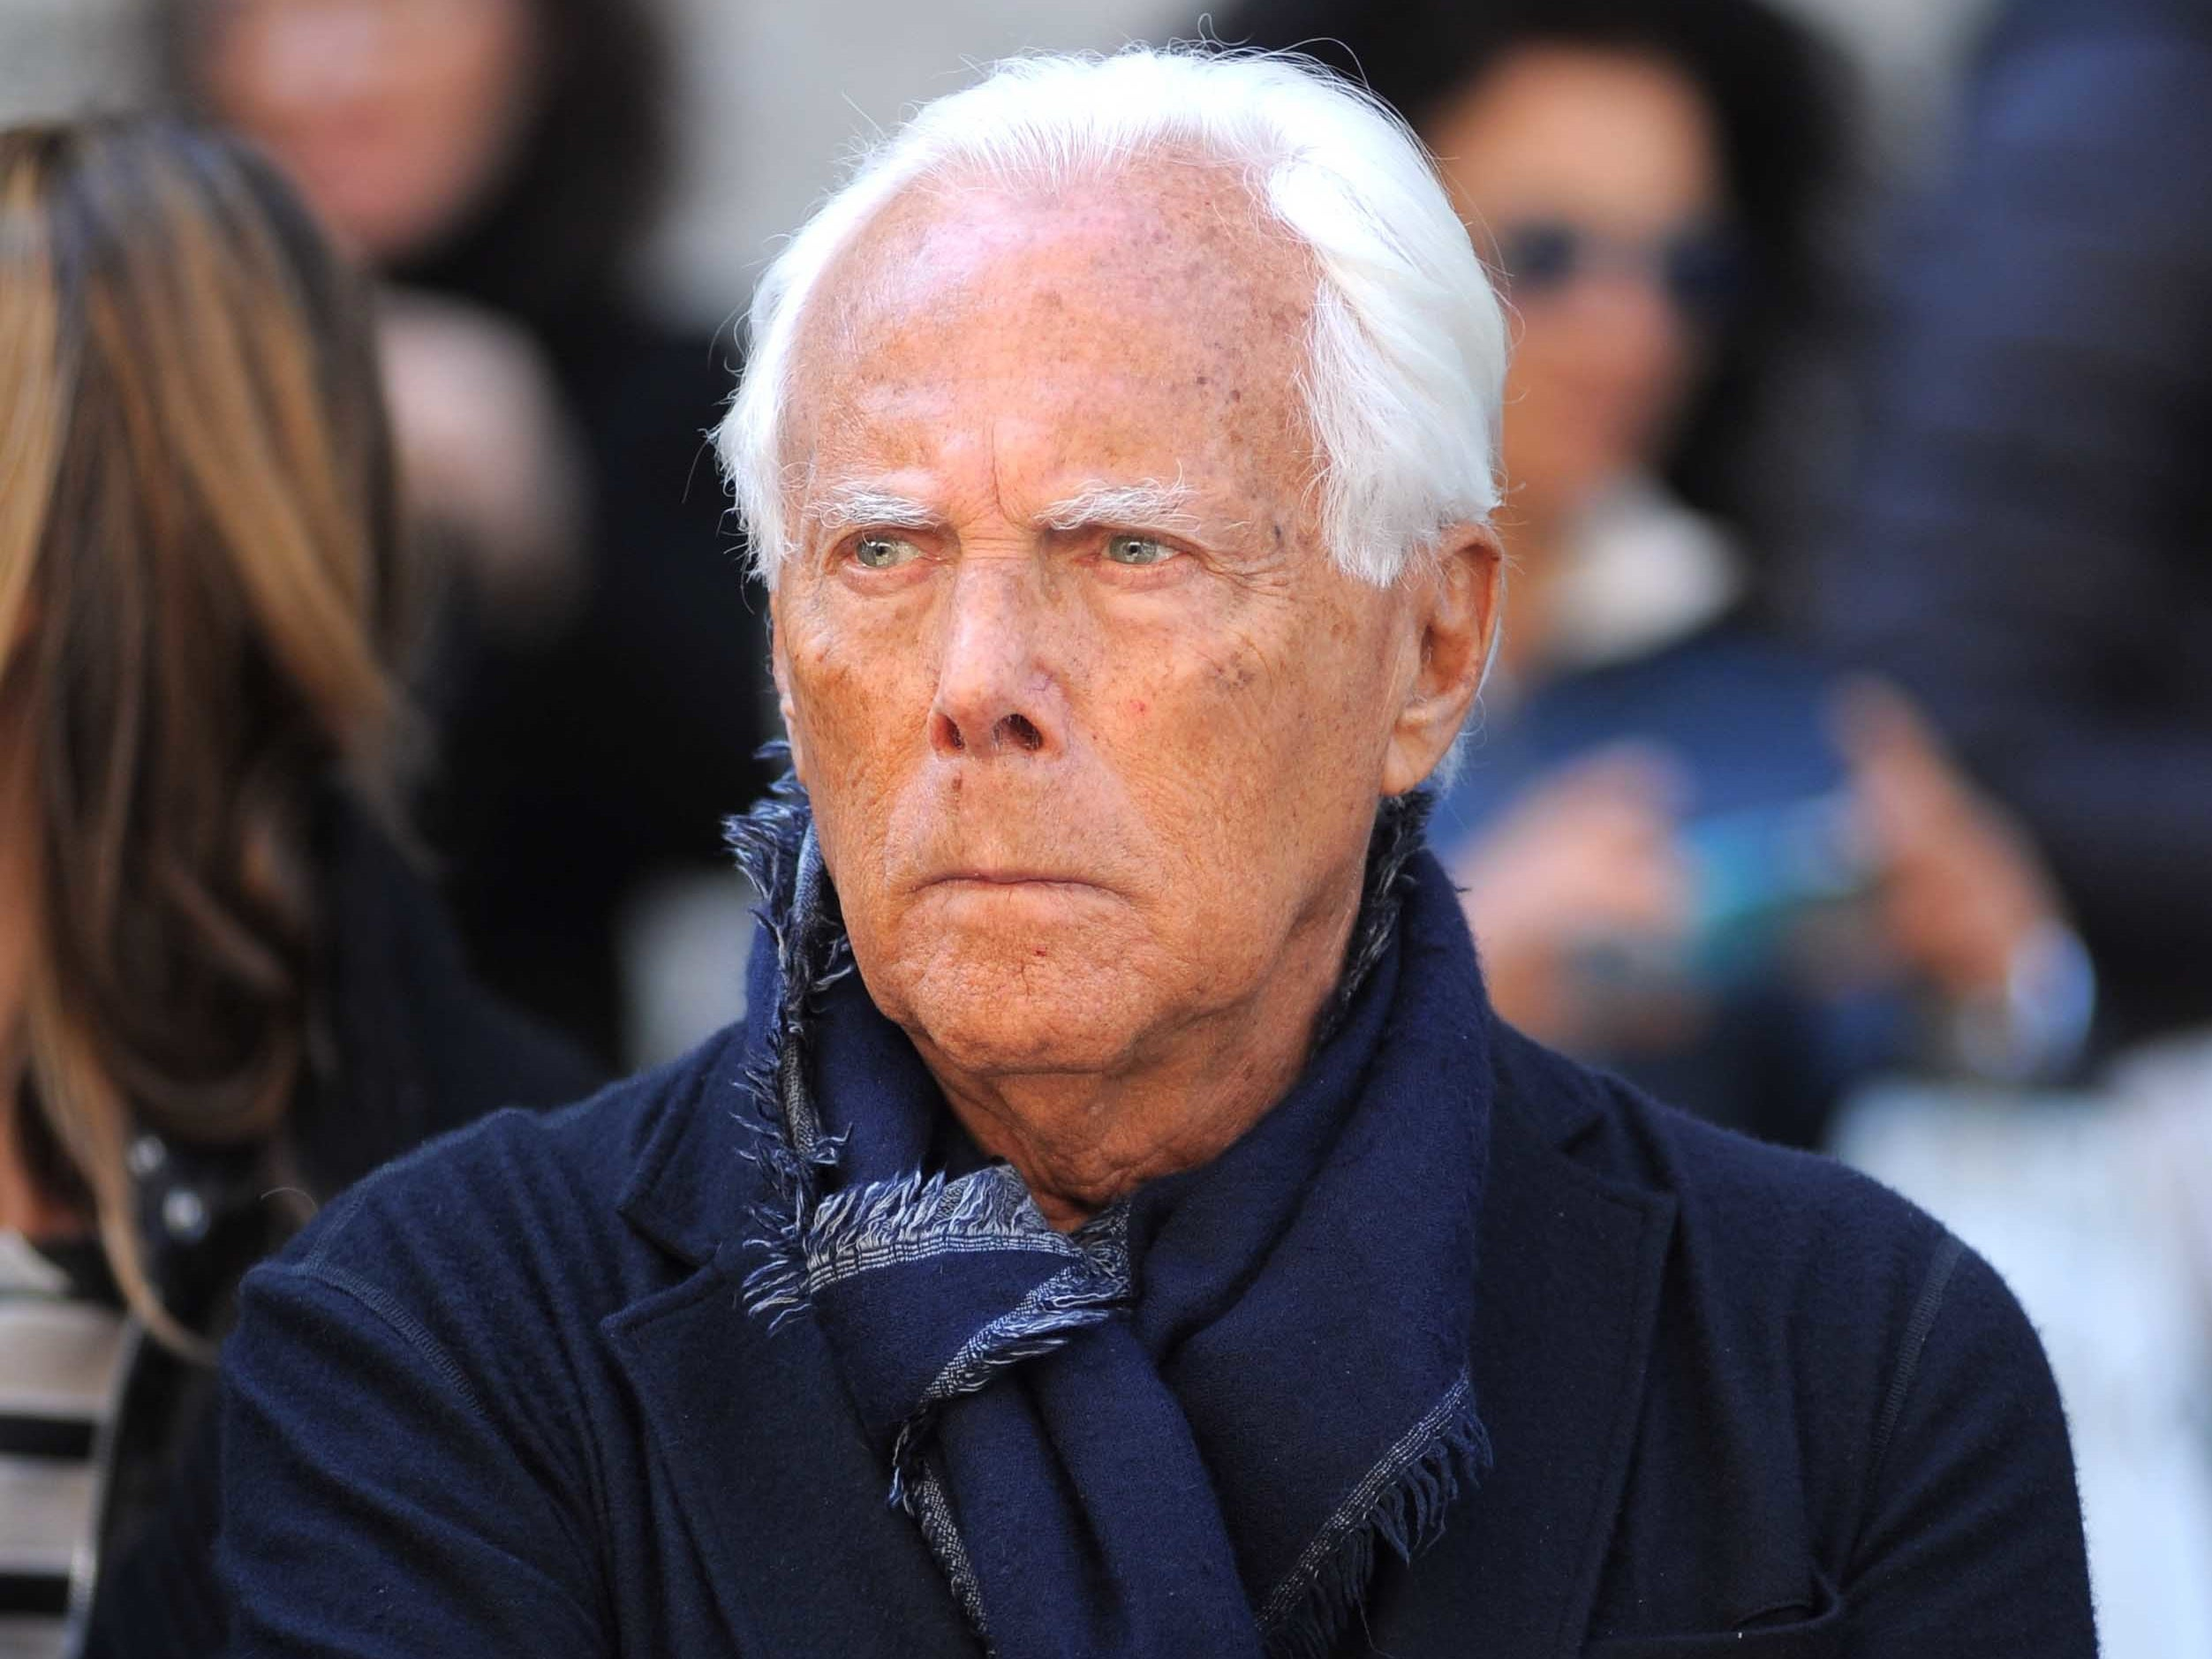 Giorgio Armani criticises the way some gay men dress saying 'a man has ...